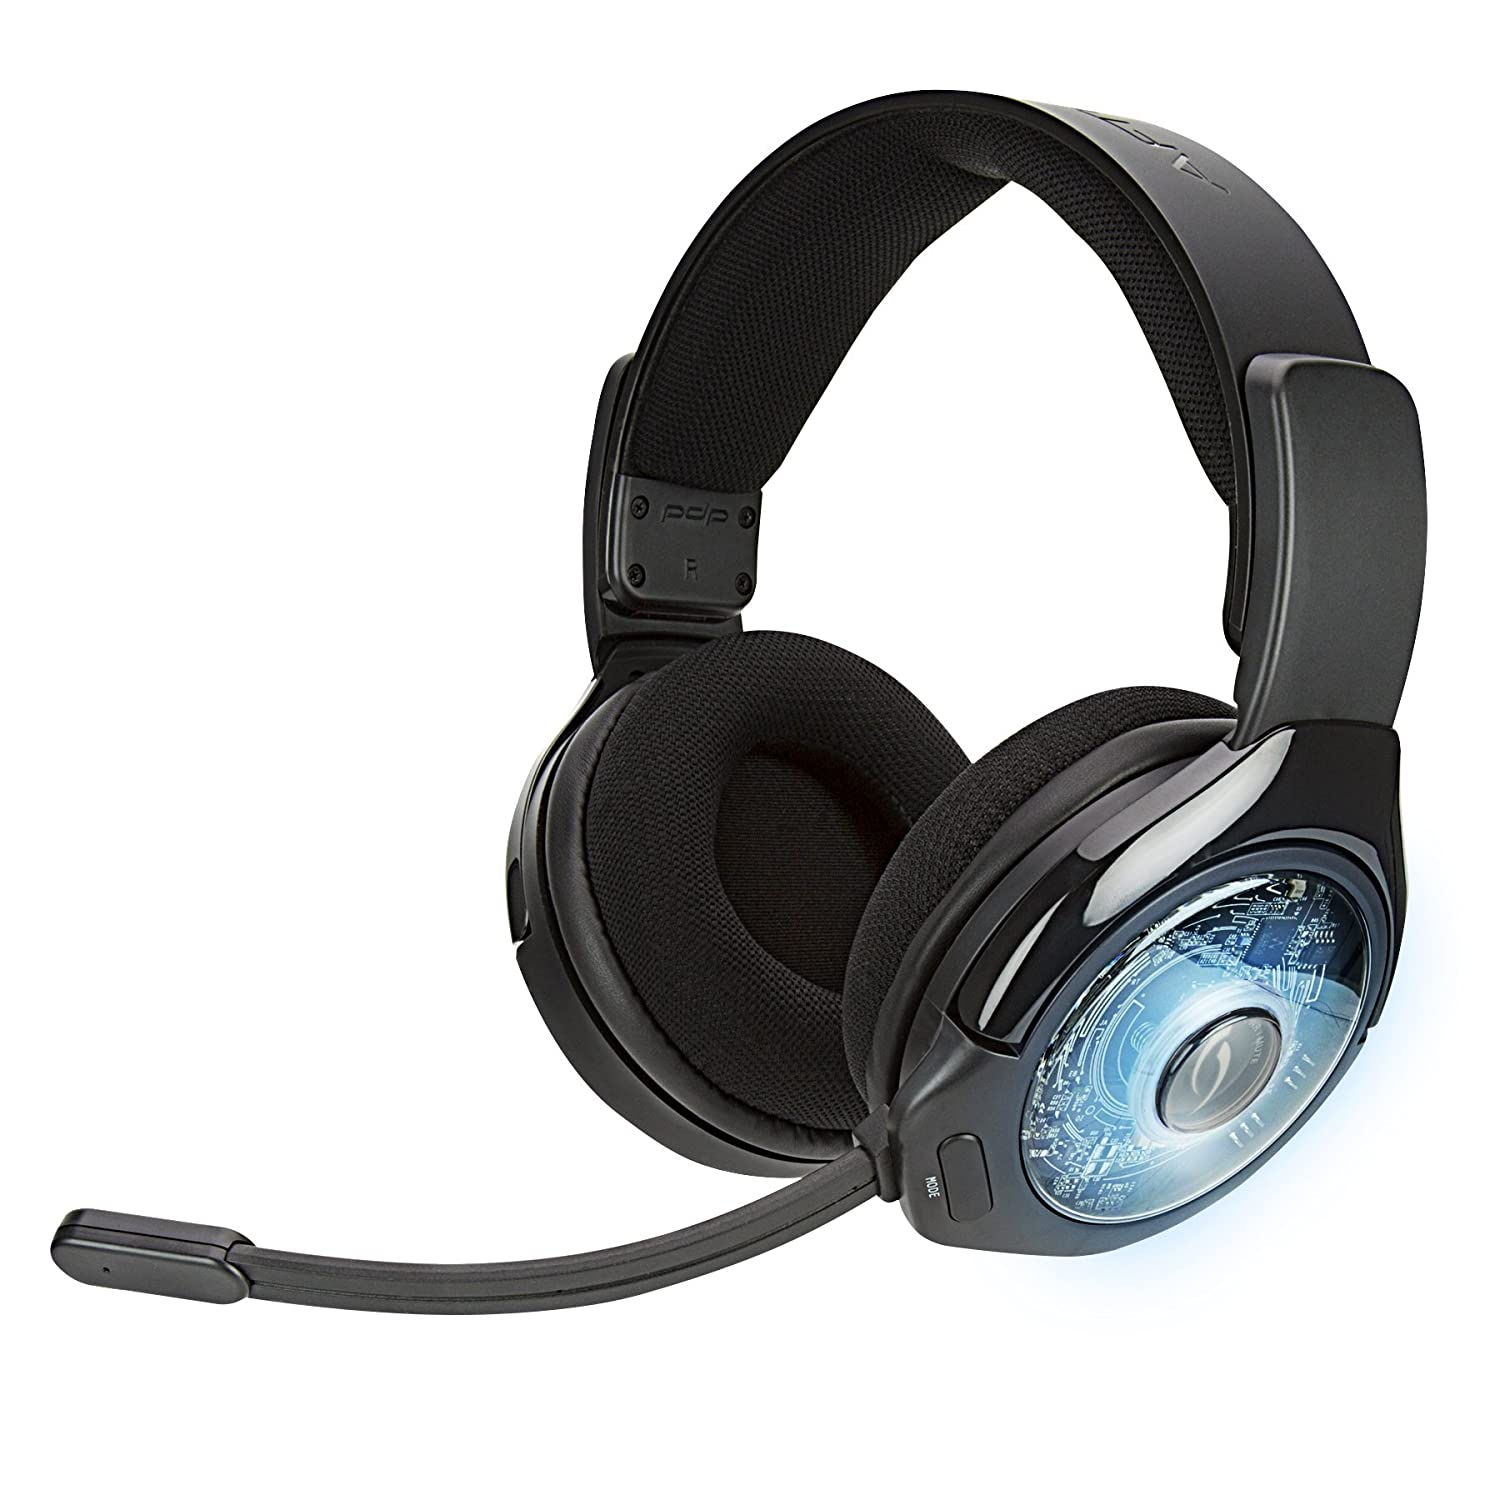 Afterglow Wireless Headset Drivers Download